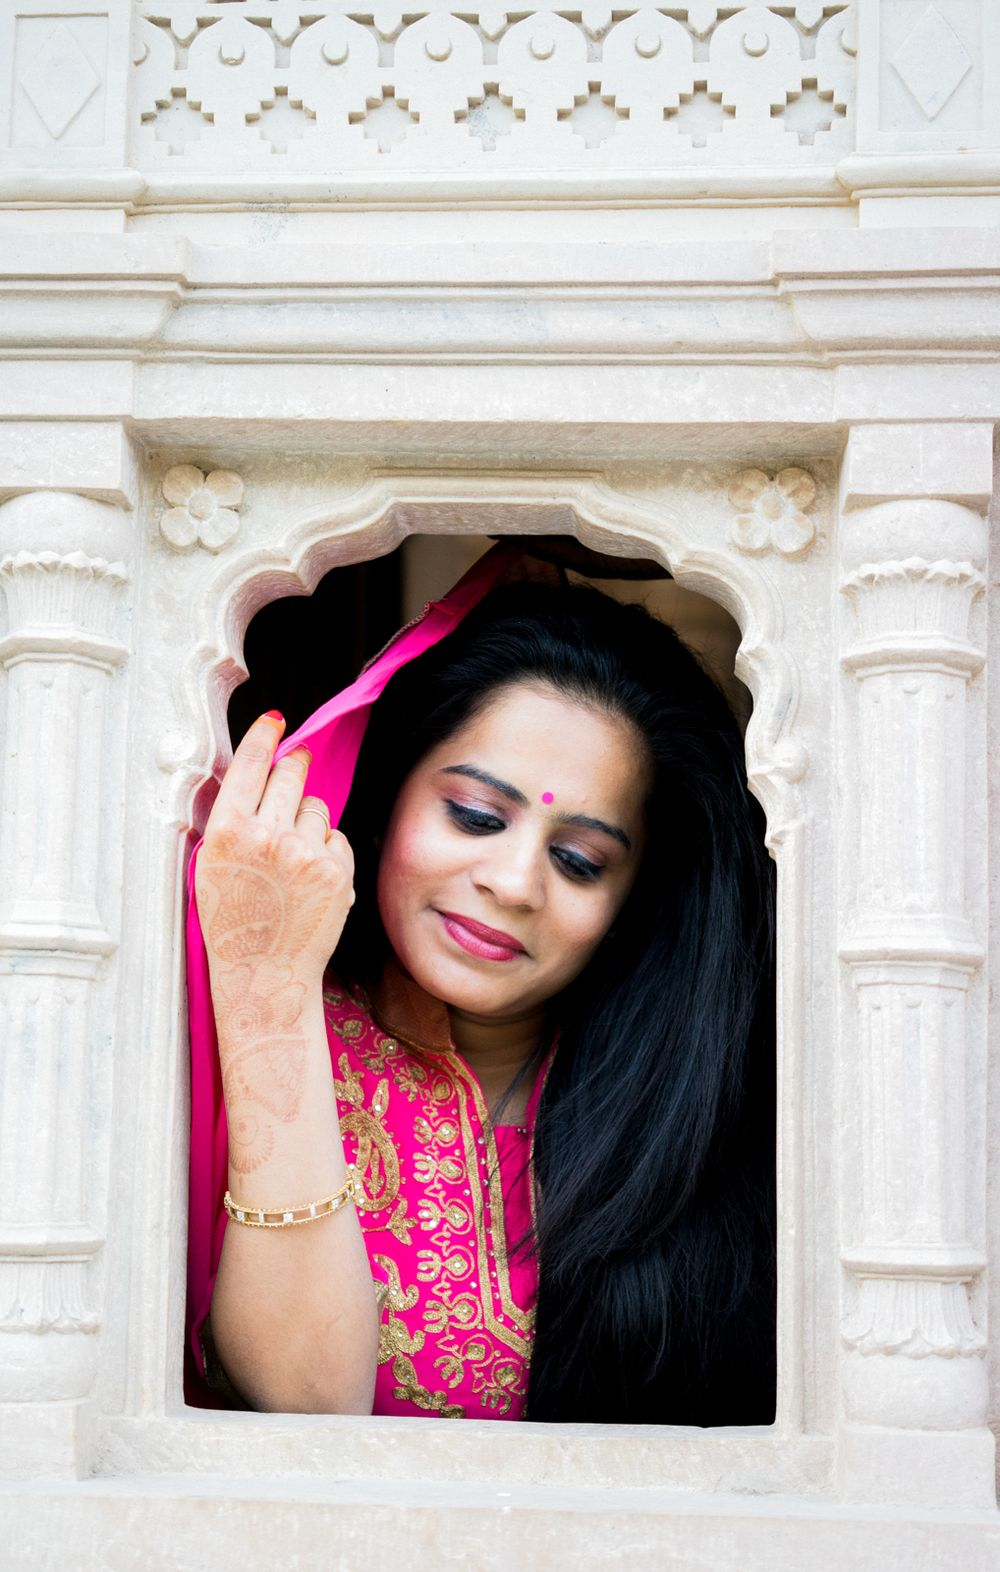 Jaipur's Top 10 Pre & Post Wedding Photography Poses You Need To Know - A Few Good Clicks